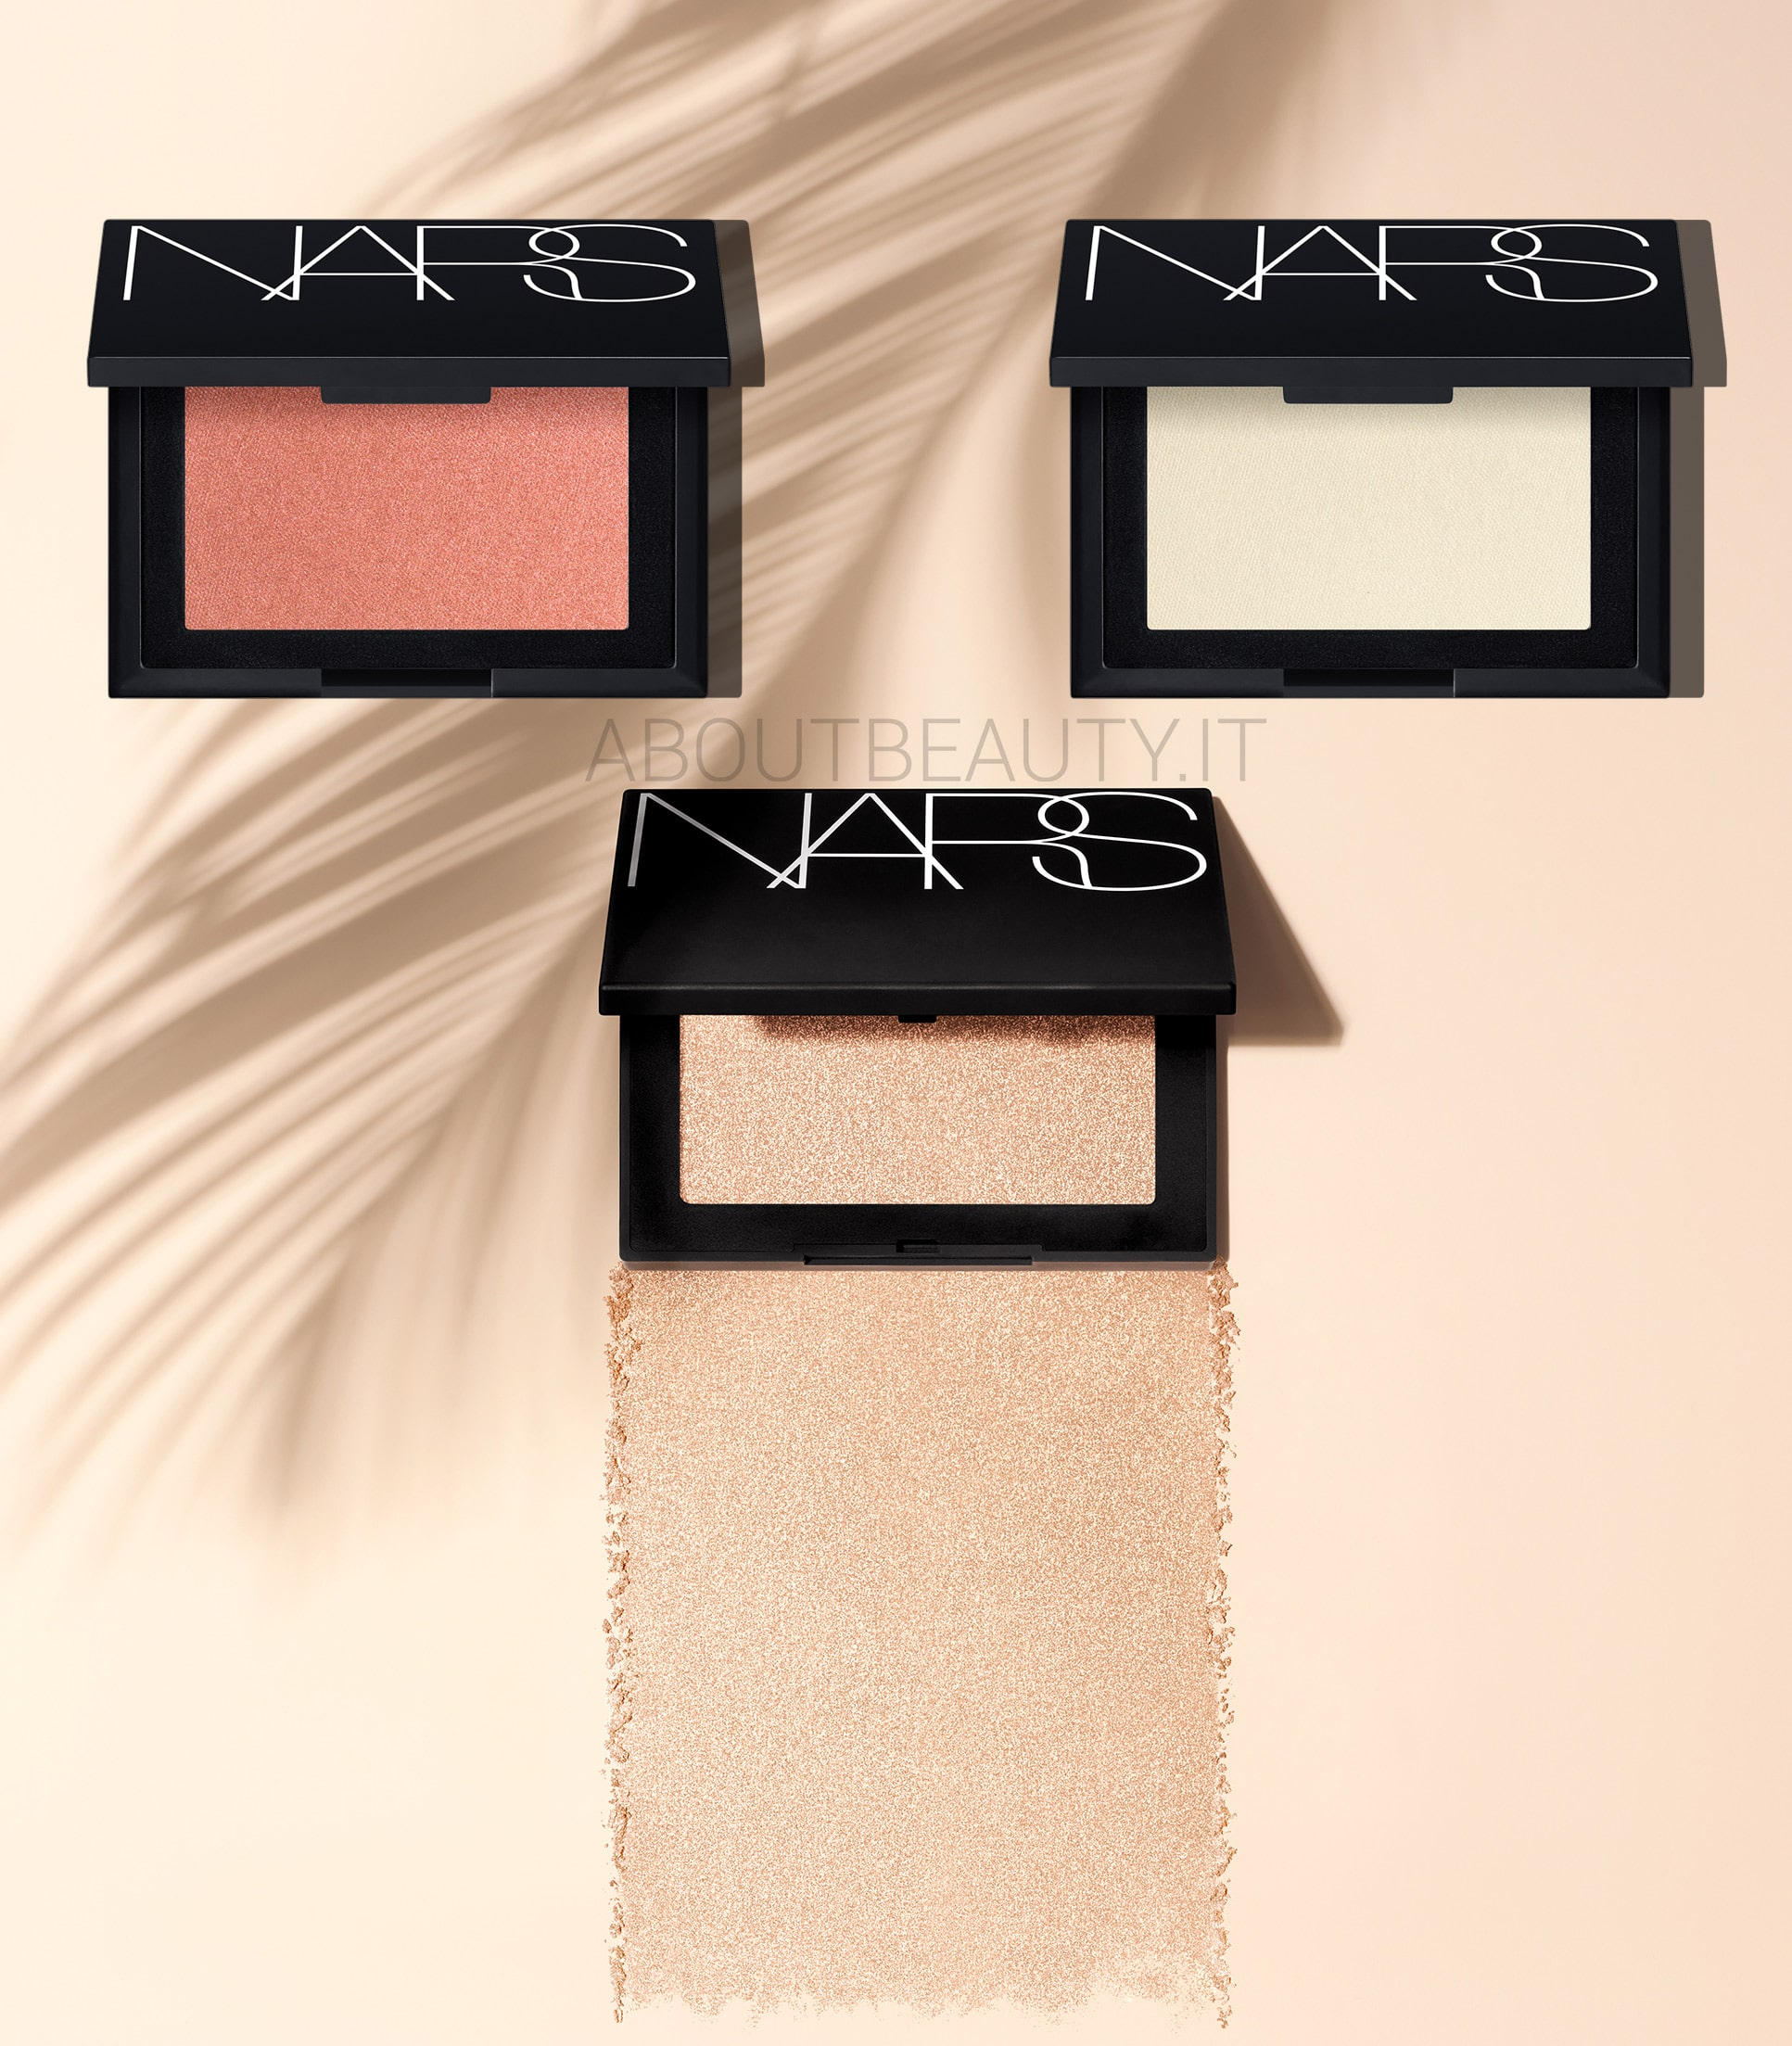 Novità Nars: NARSissist Wanted Cheek Palette e NARSissist Wanted Power Pack Lip Kits, Highlighting Powder - Review, recensione, info, prezzo, dove acquistare, data uscita, swatch, INCI